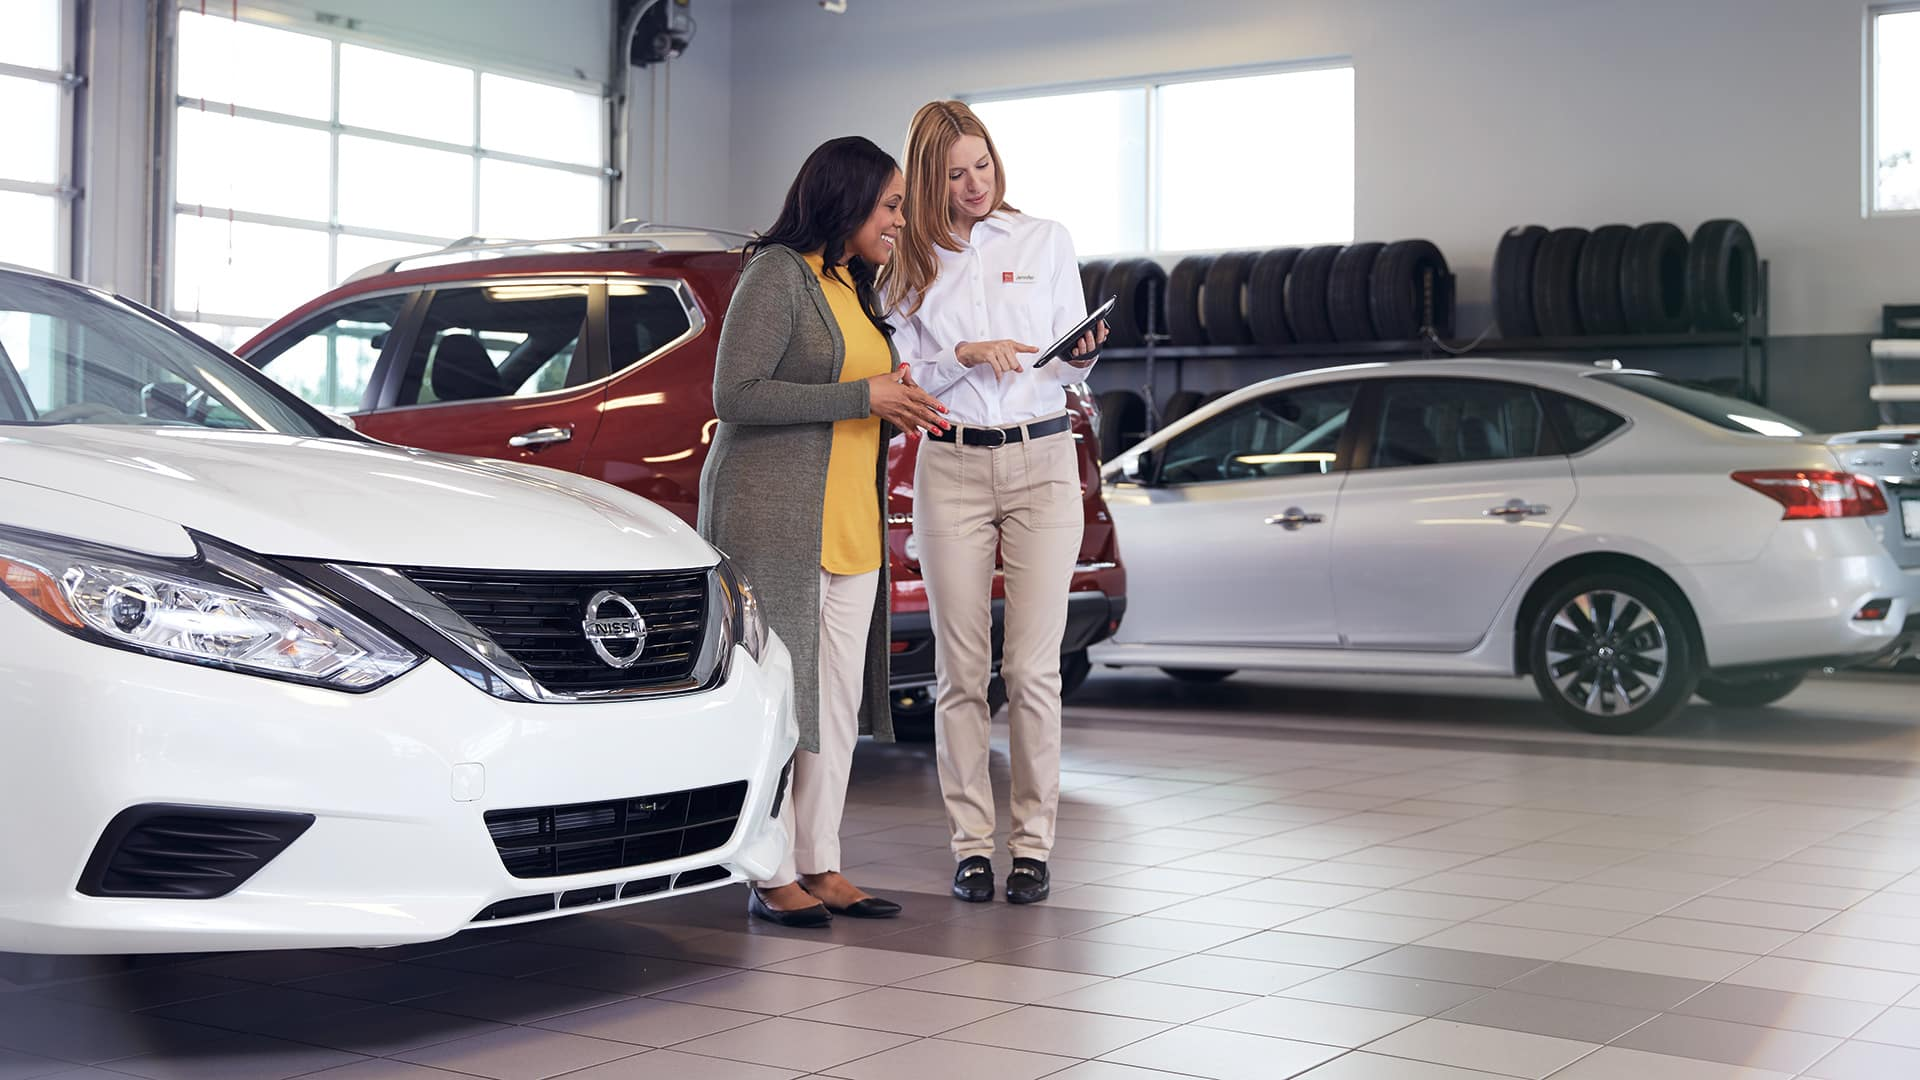 Boch Nissan South is a Family Owned Dealership near Pawtucket, RI | Customer meeting with Nissan Service Advisor